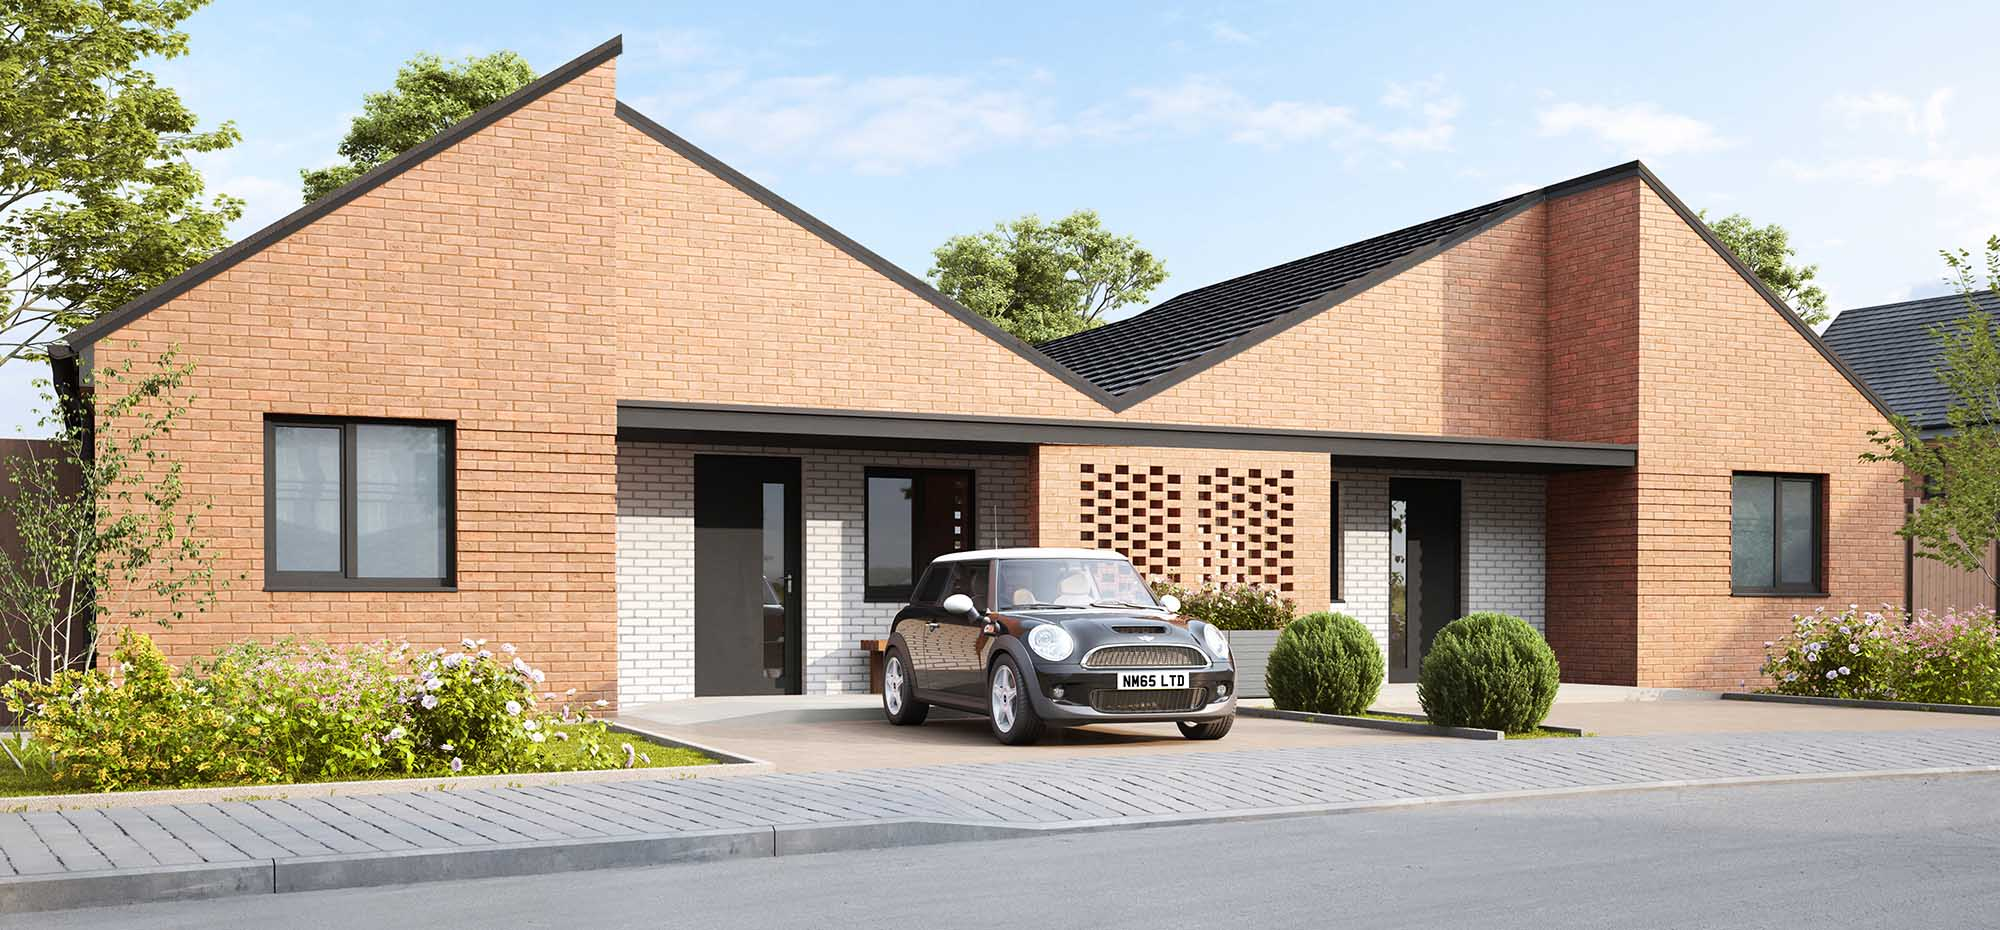 This image shows an exterior view of the Shape Homes York Buddleia bungalow.